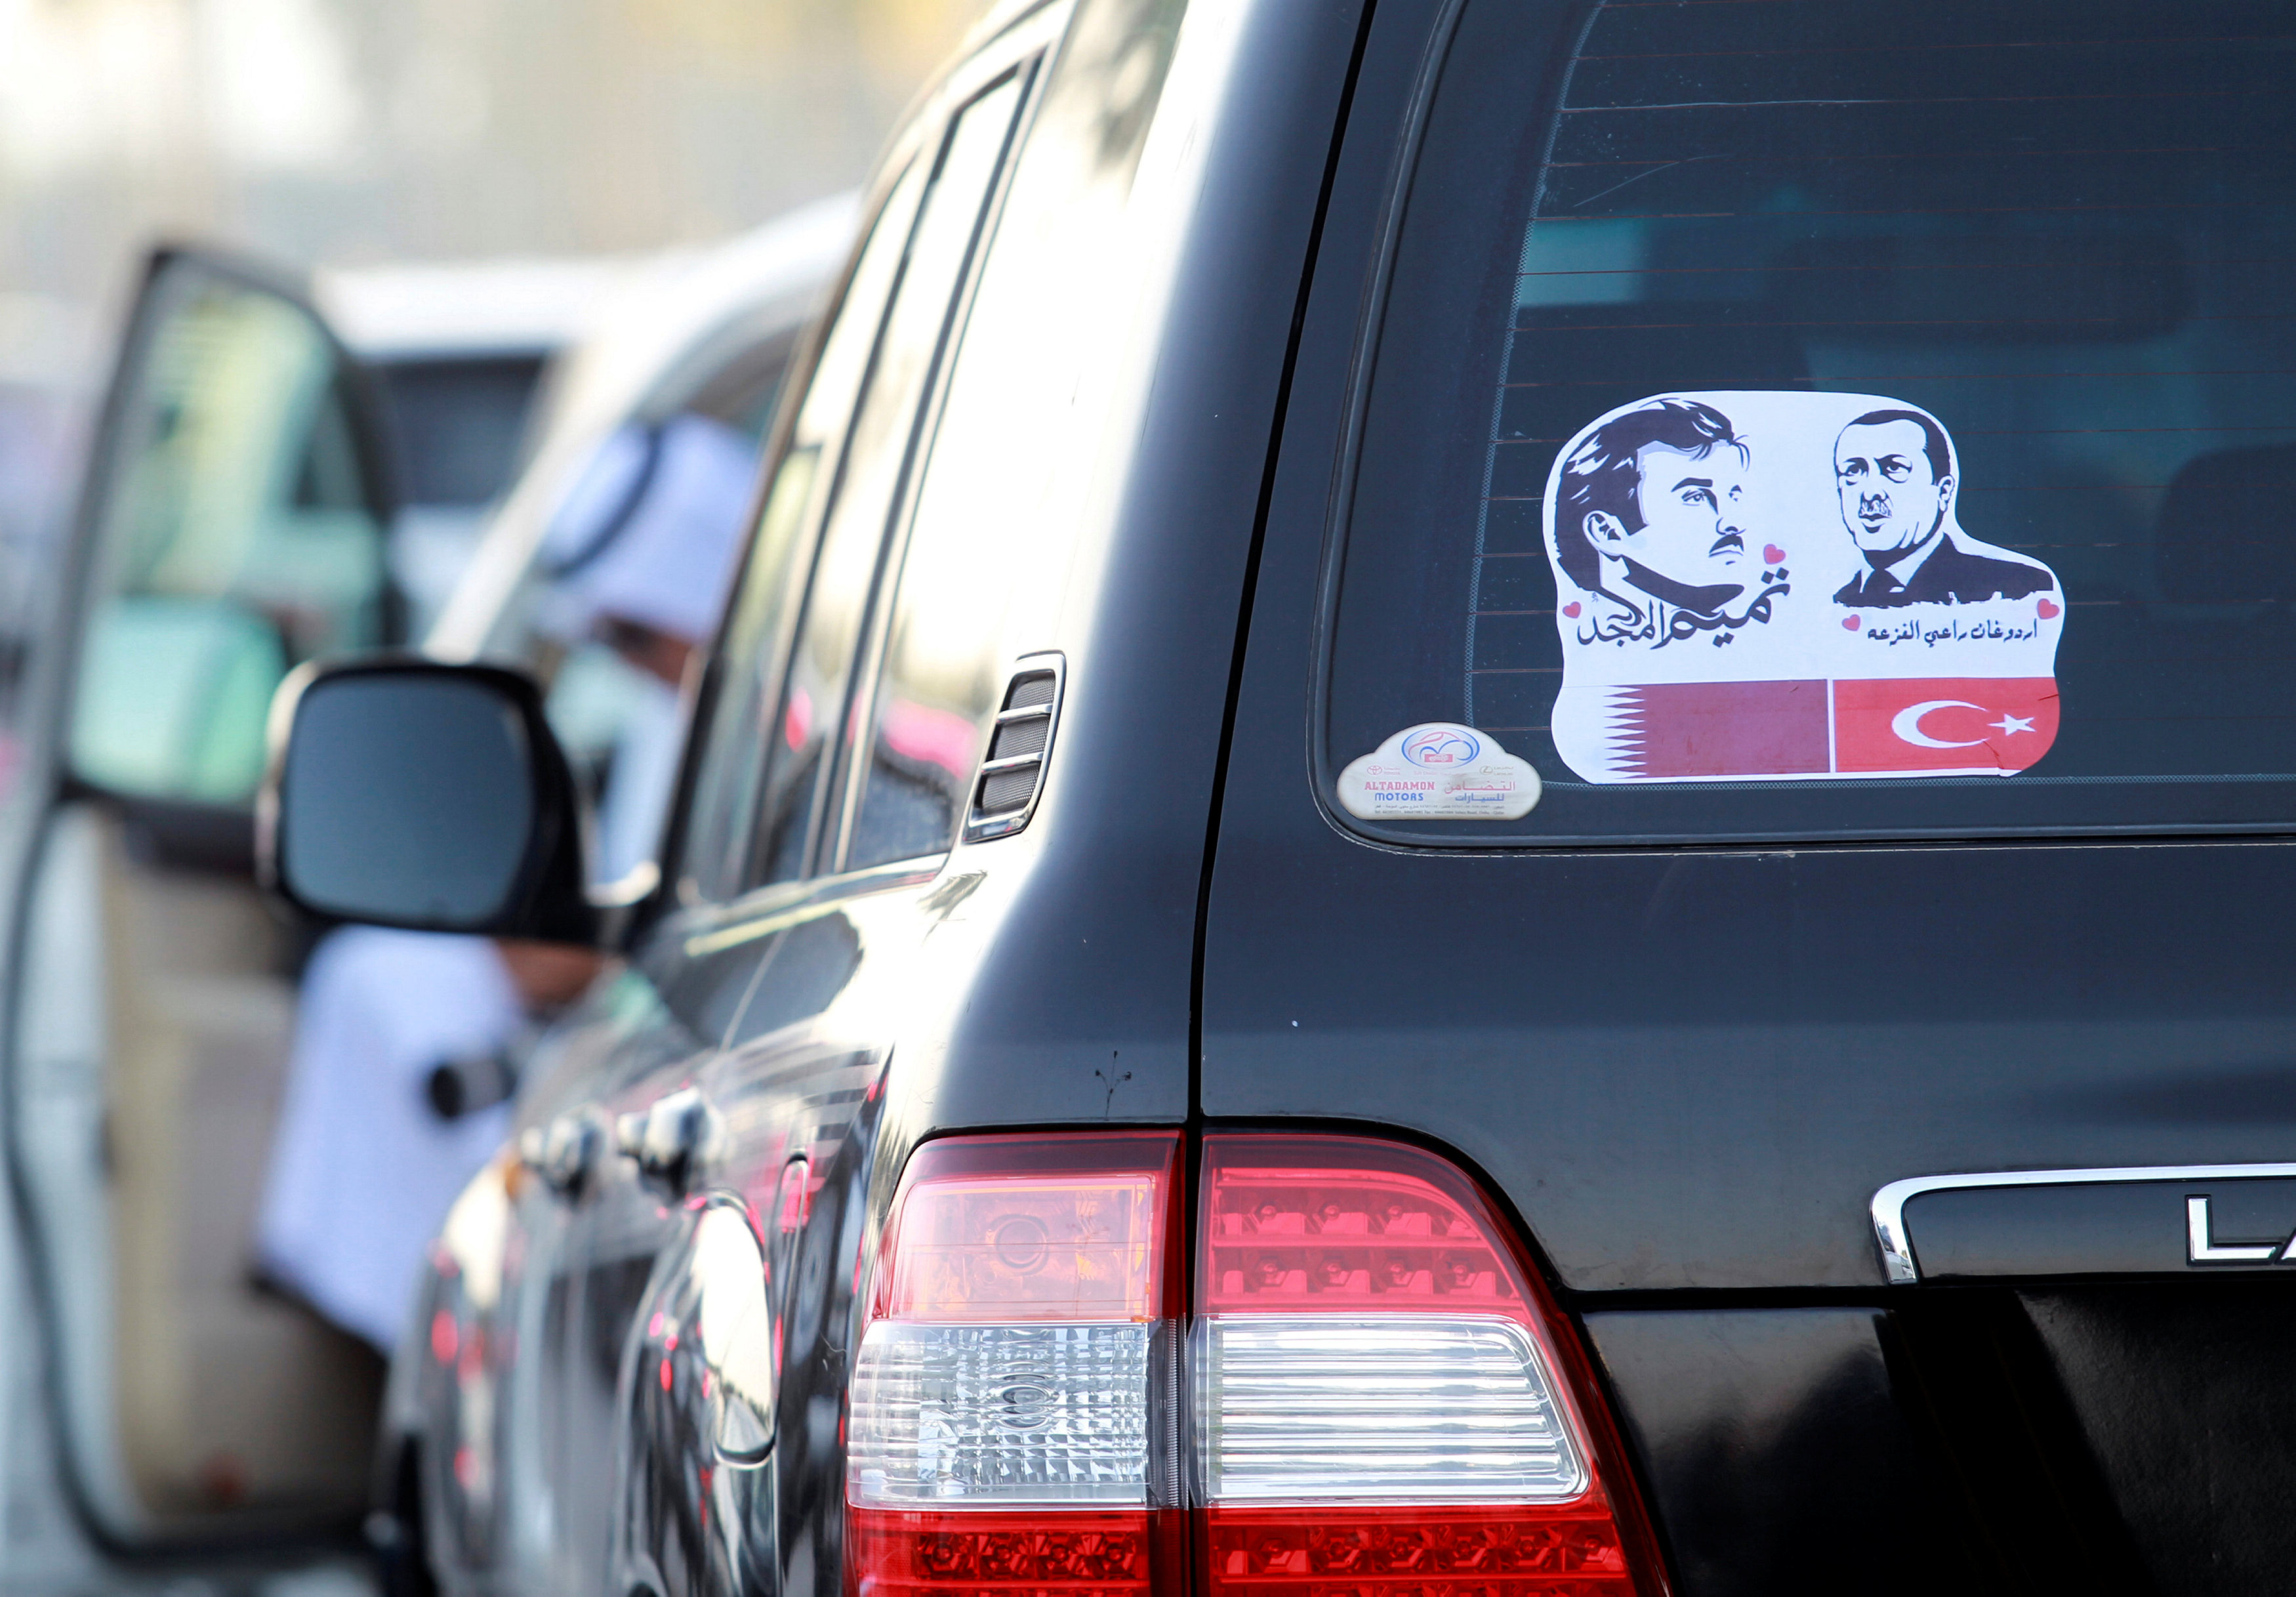 The pictures of Qatar's Emir Sheikh Tamim Bin Hamad Al-Thani (L) and Turkish President Tayyip Erdogan are seen on a car during a demonstration in support of him in Doha, Qatar on June 11, 2017. (REUTERS/Naseem Zeitoon)